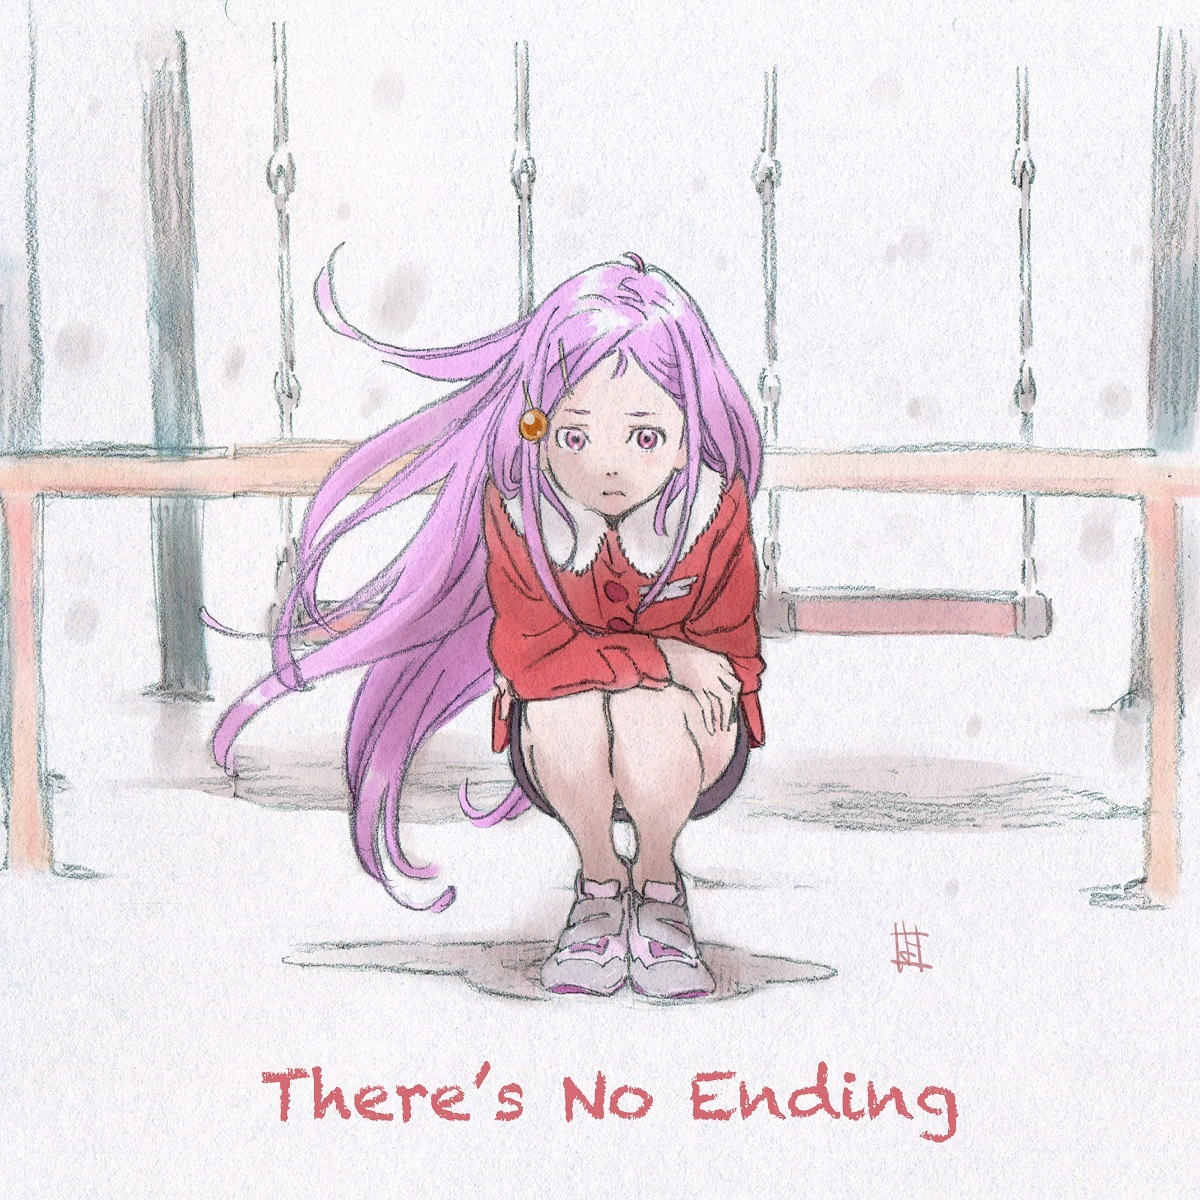 「There's No Ending」